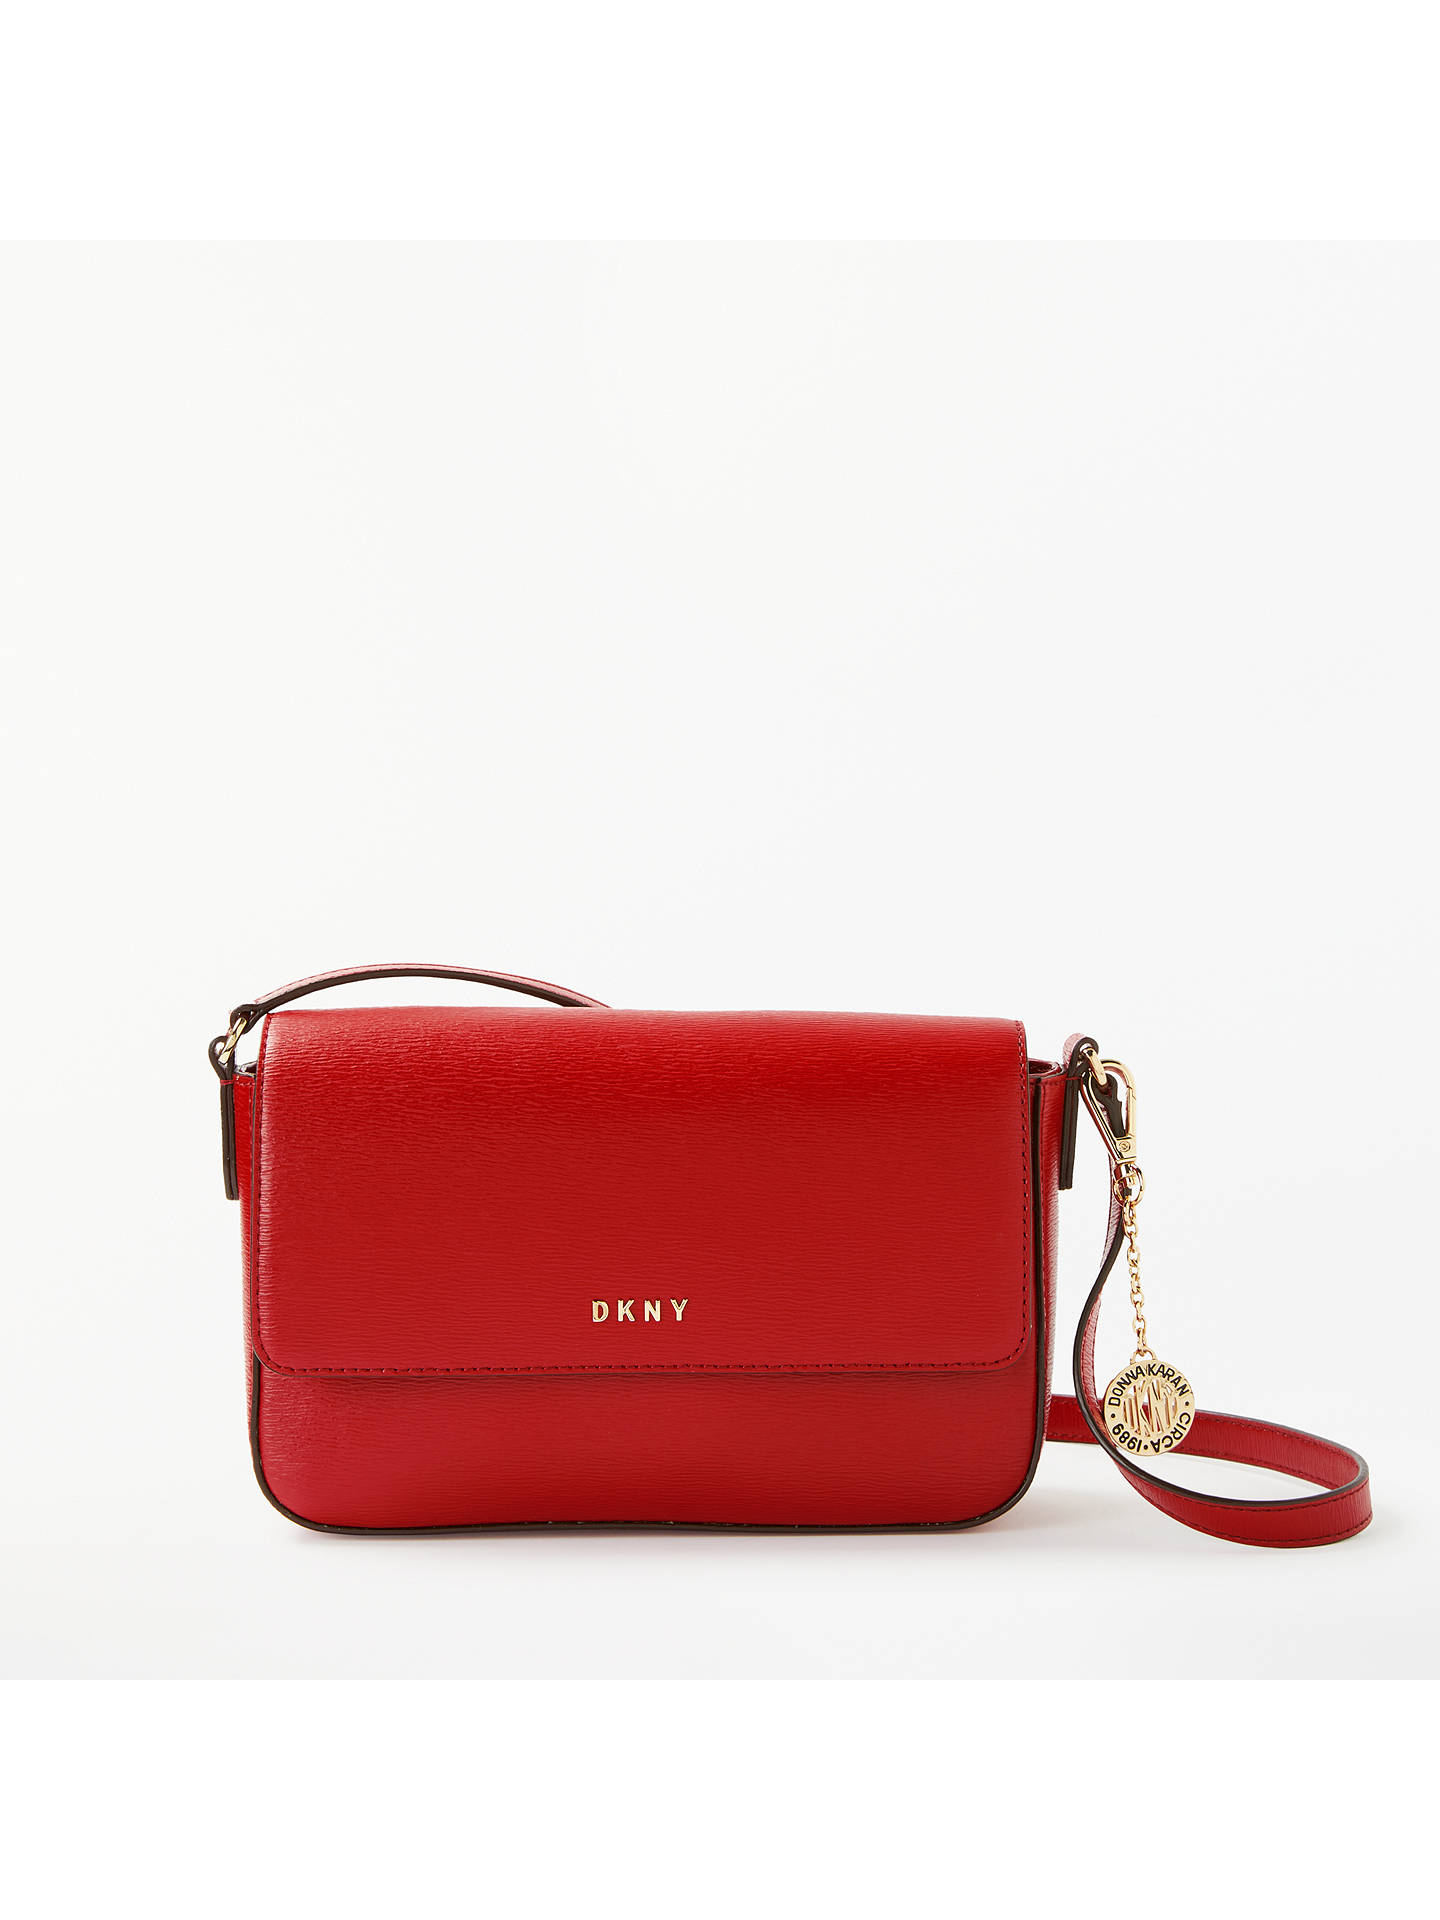 38af3b7c96f0 Buy DKNY Bryant Saffiano Leather Small Flap Cross Body Bag, Safari Red  Online at johnlewis ...